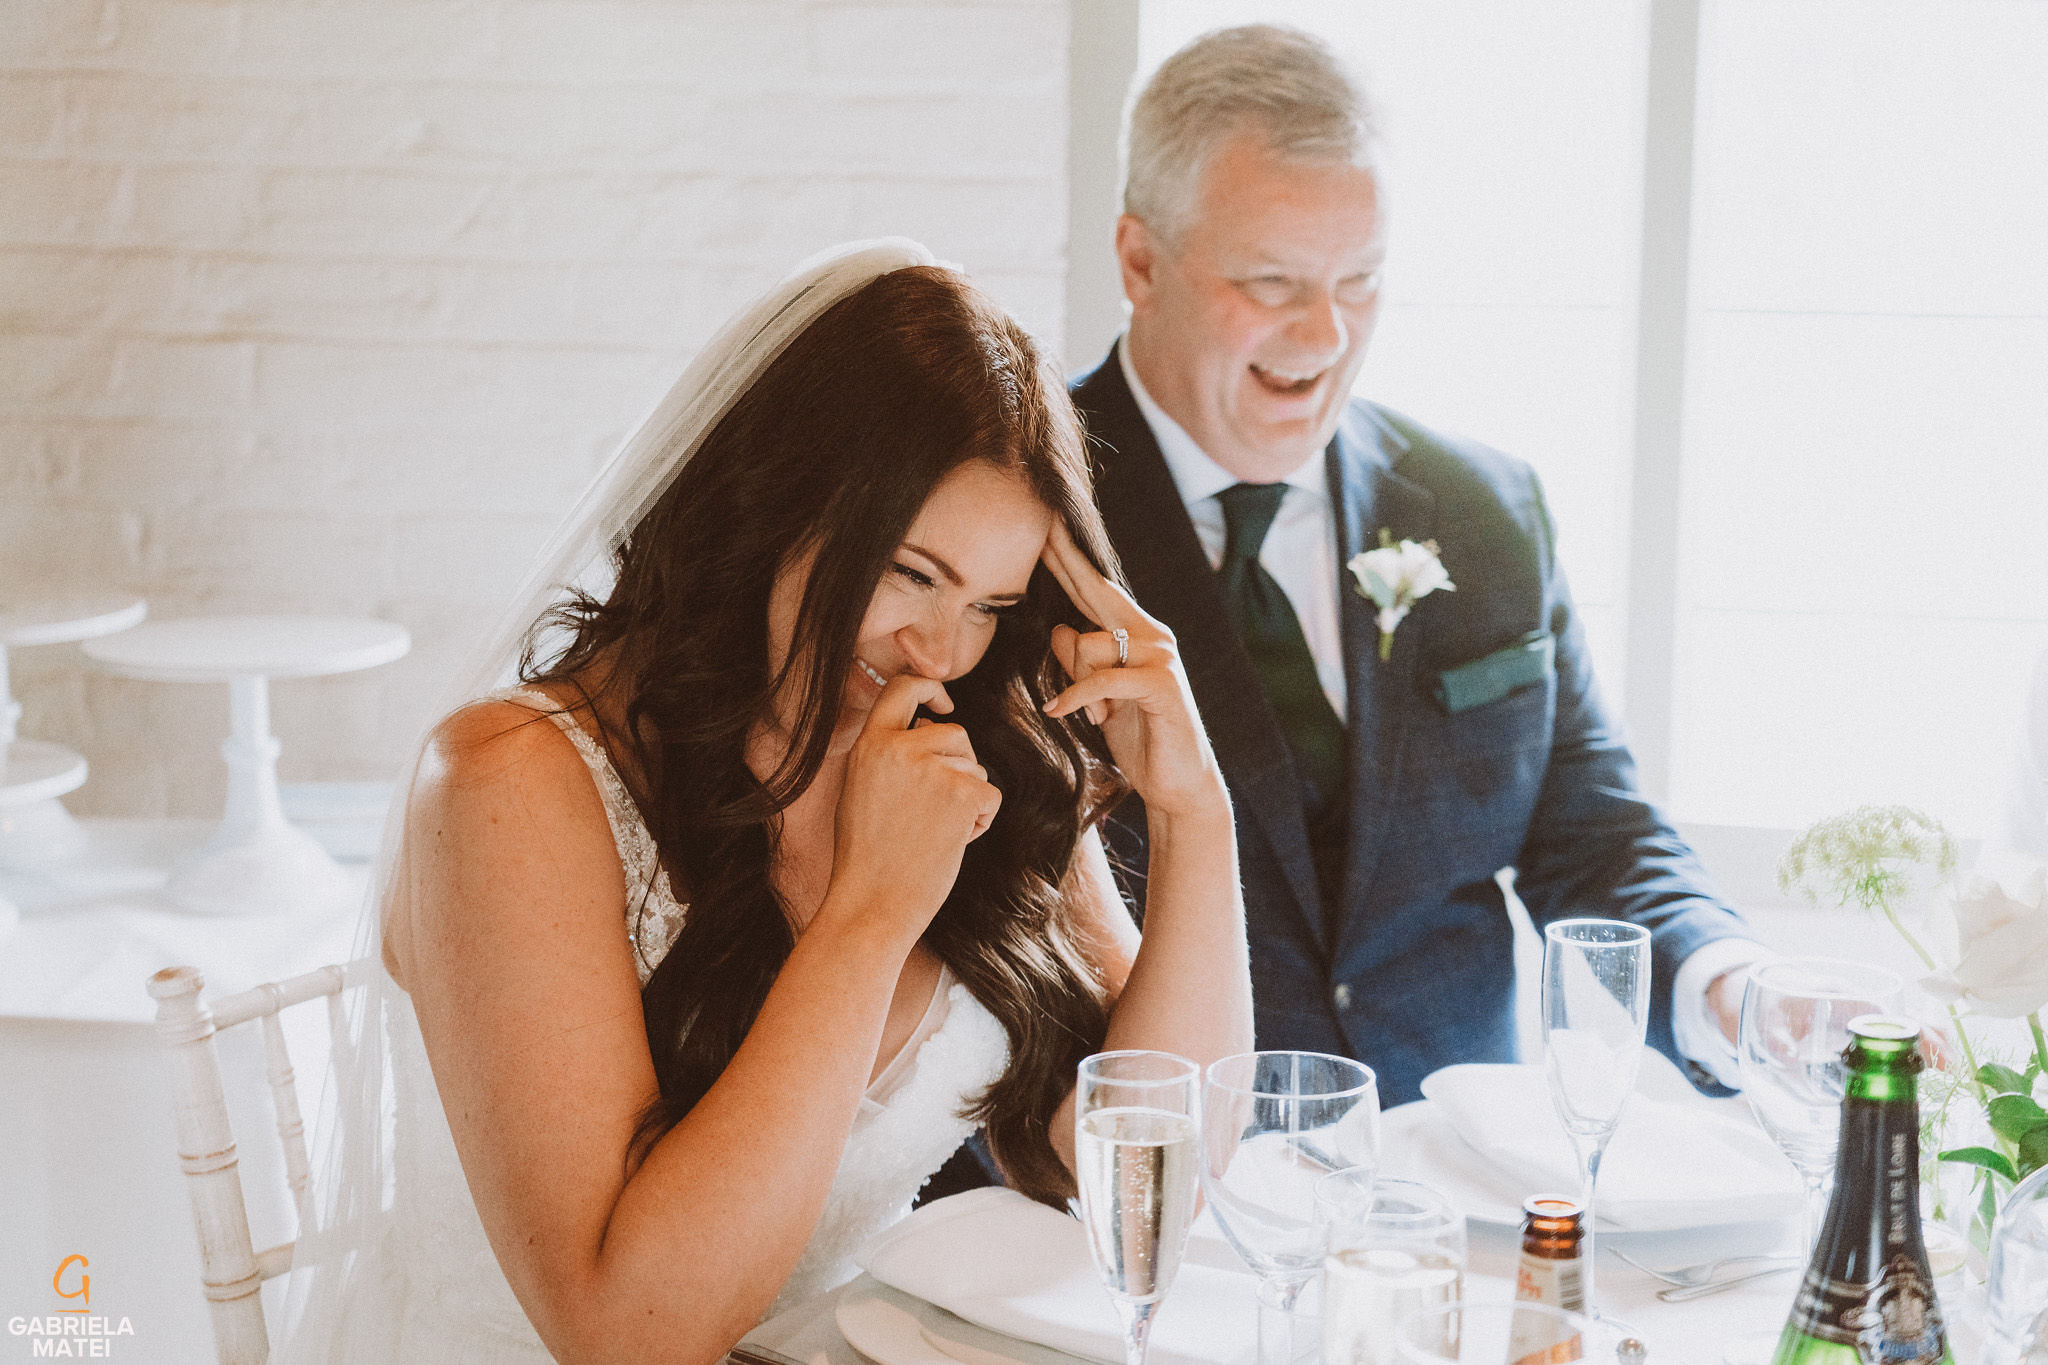 Bride laughing during speeches at South Stoke Barn wedding venue in Arundel by gabriela matei sussex photographer